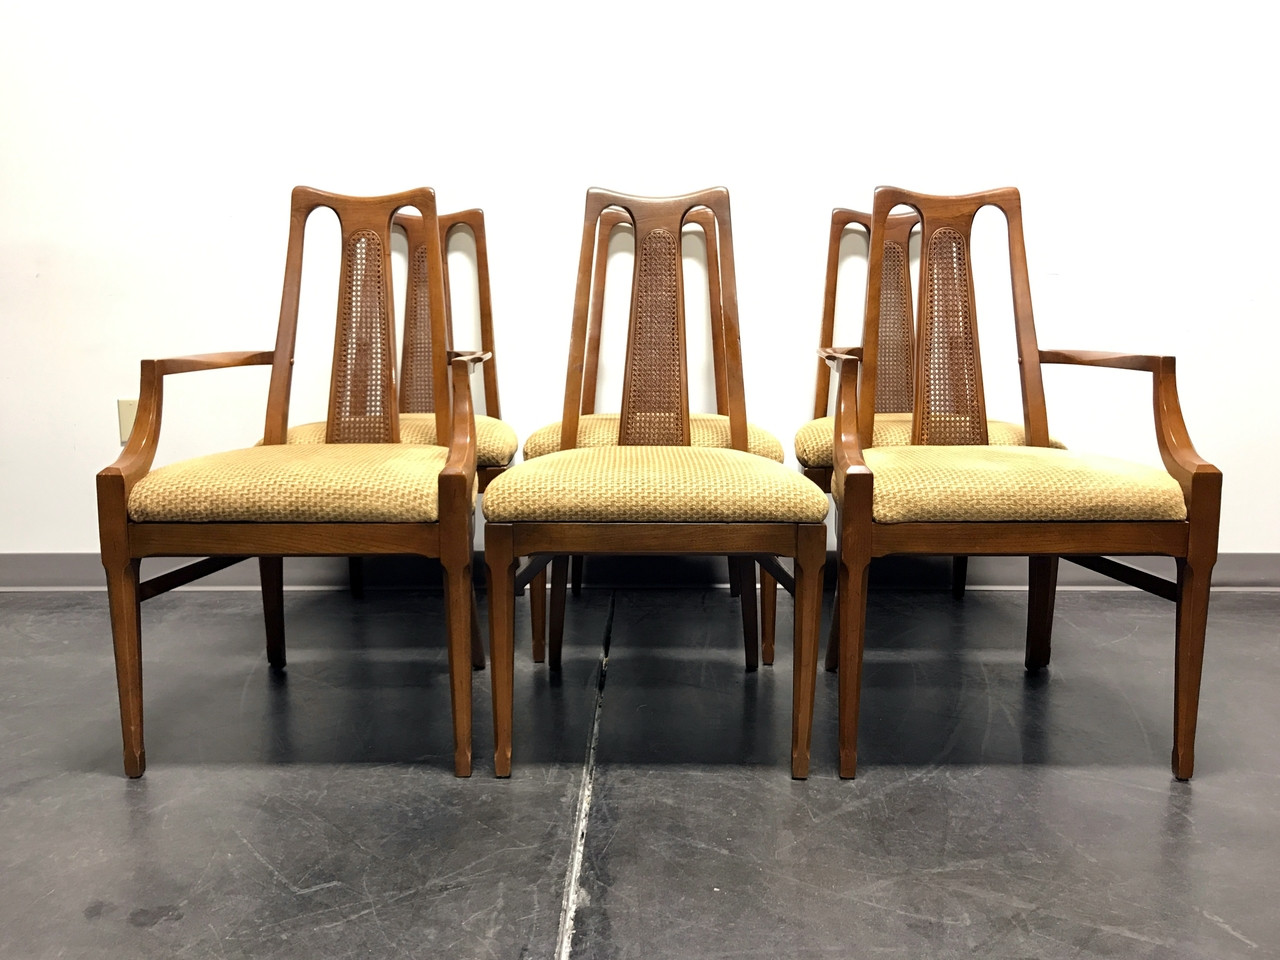 Dining Chair Set Of 6 White Furniture Co Mid Century Modern Walnut Cane Dining Chairs Set Of 6